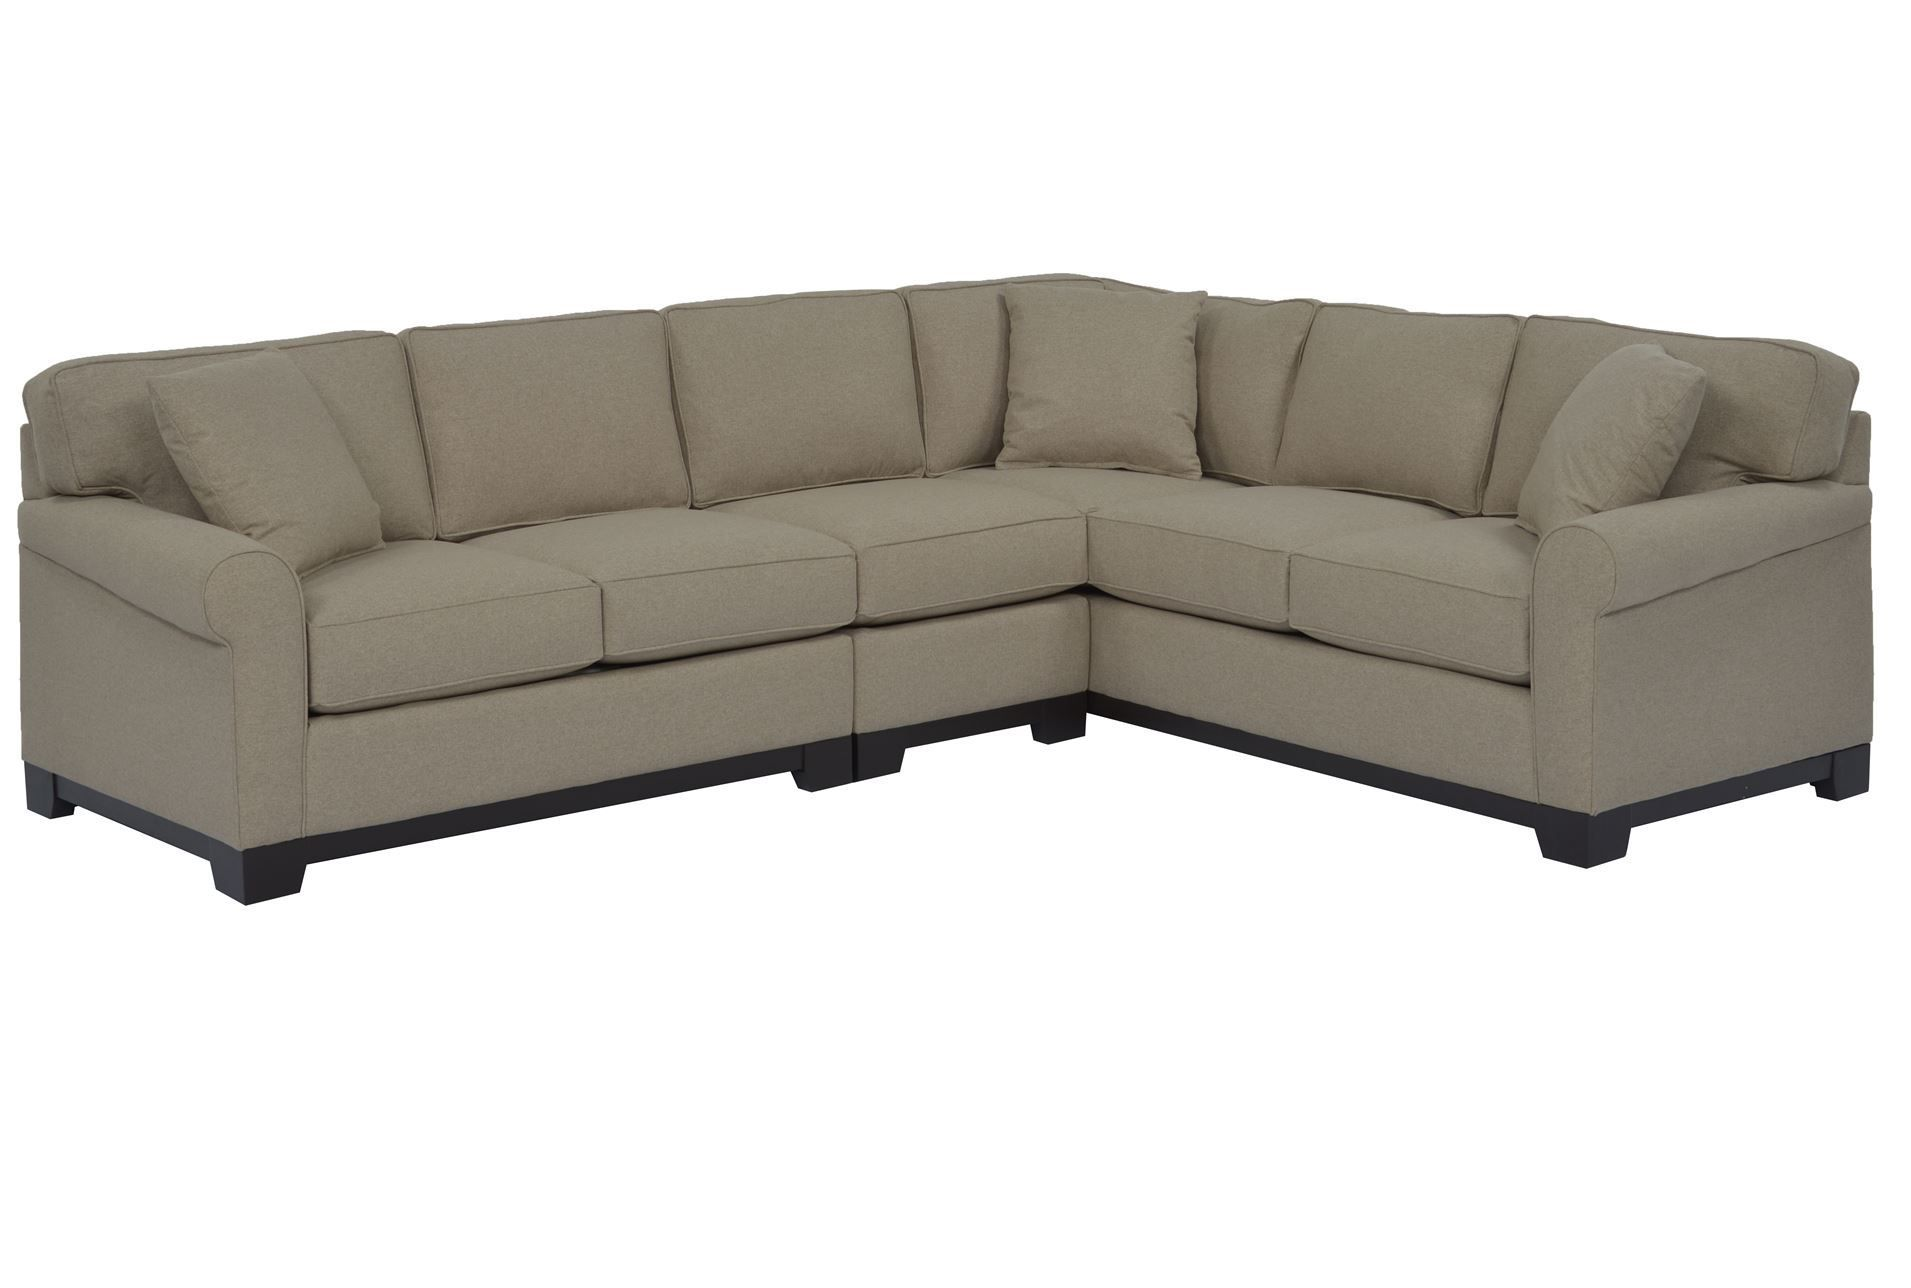 Sycamore 3 Piece Sectional